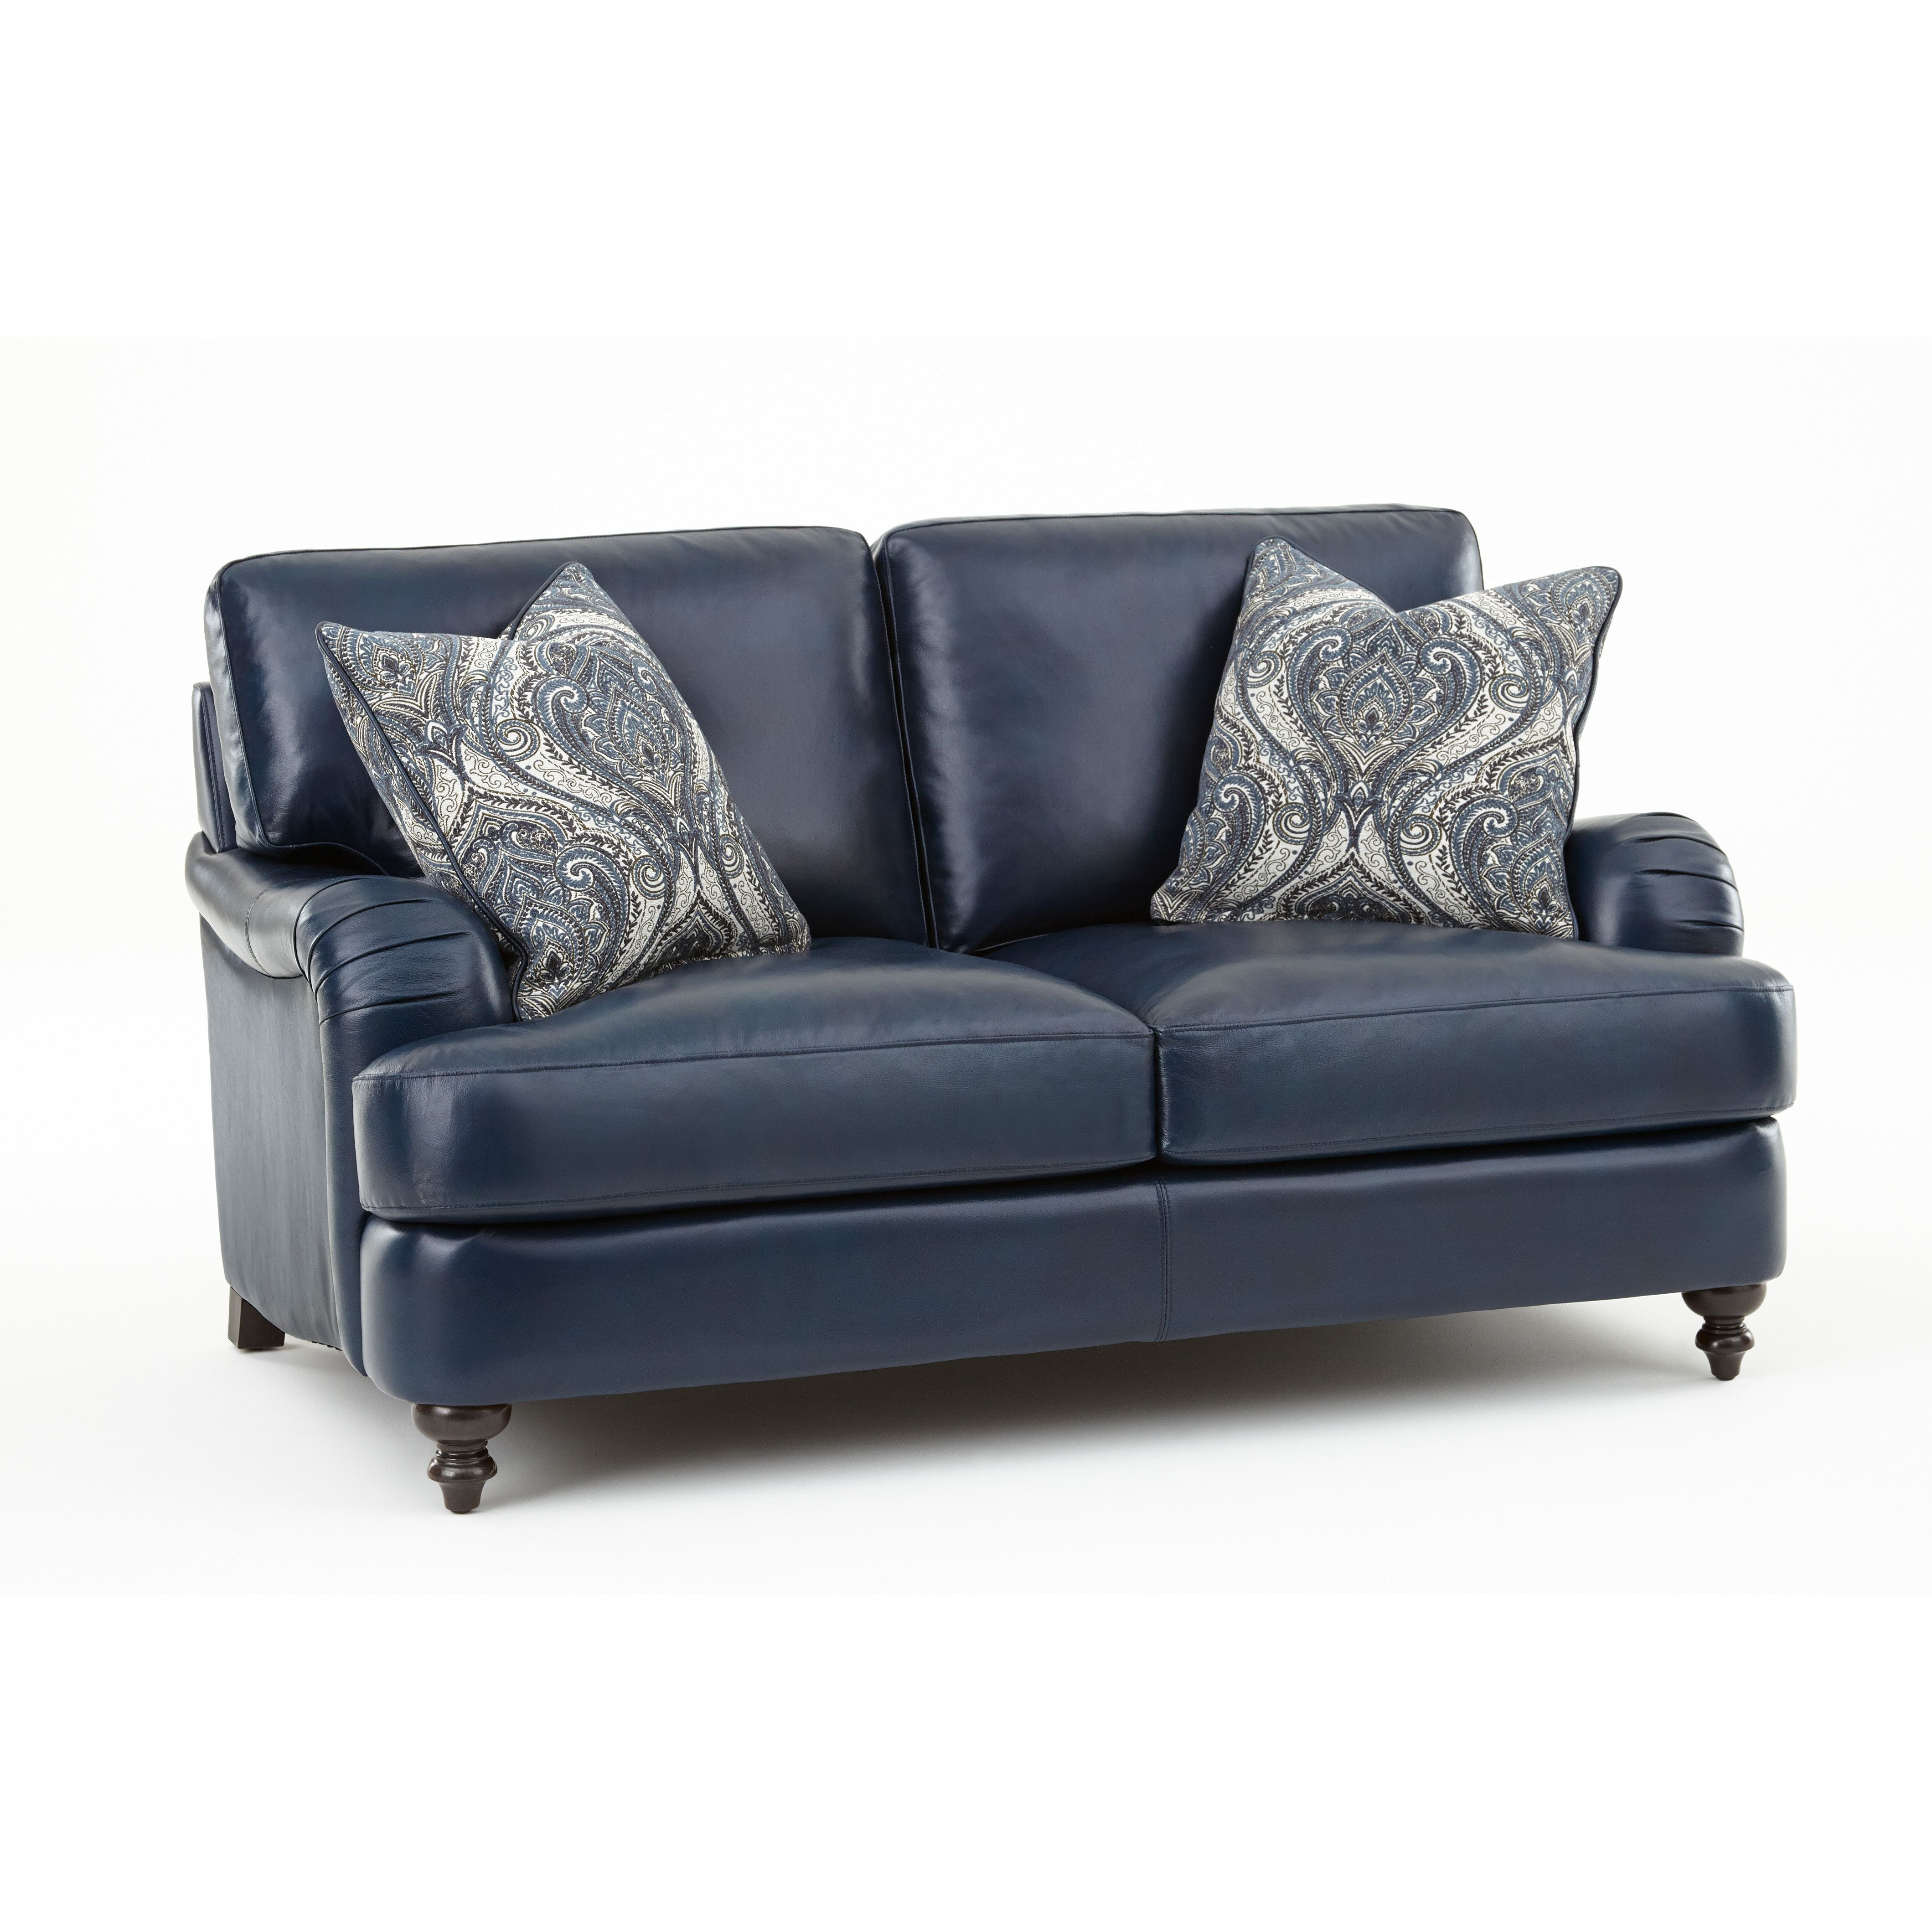 Darby Home Co Marissa Leather Loveseat | Wayfair | Furniture Ideas Within Marissa Sofa Chairs (Image 2 of 20)